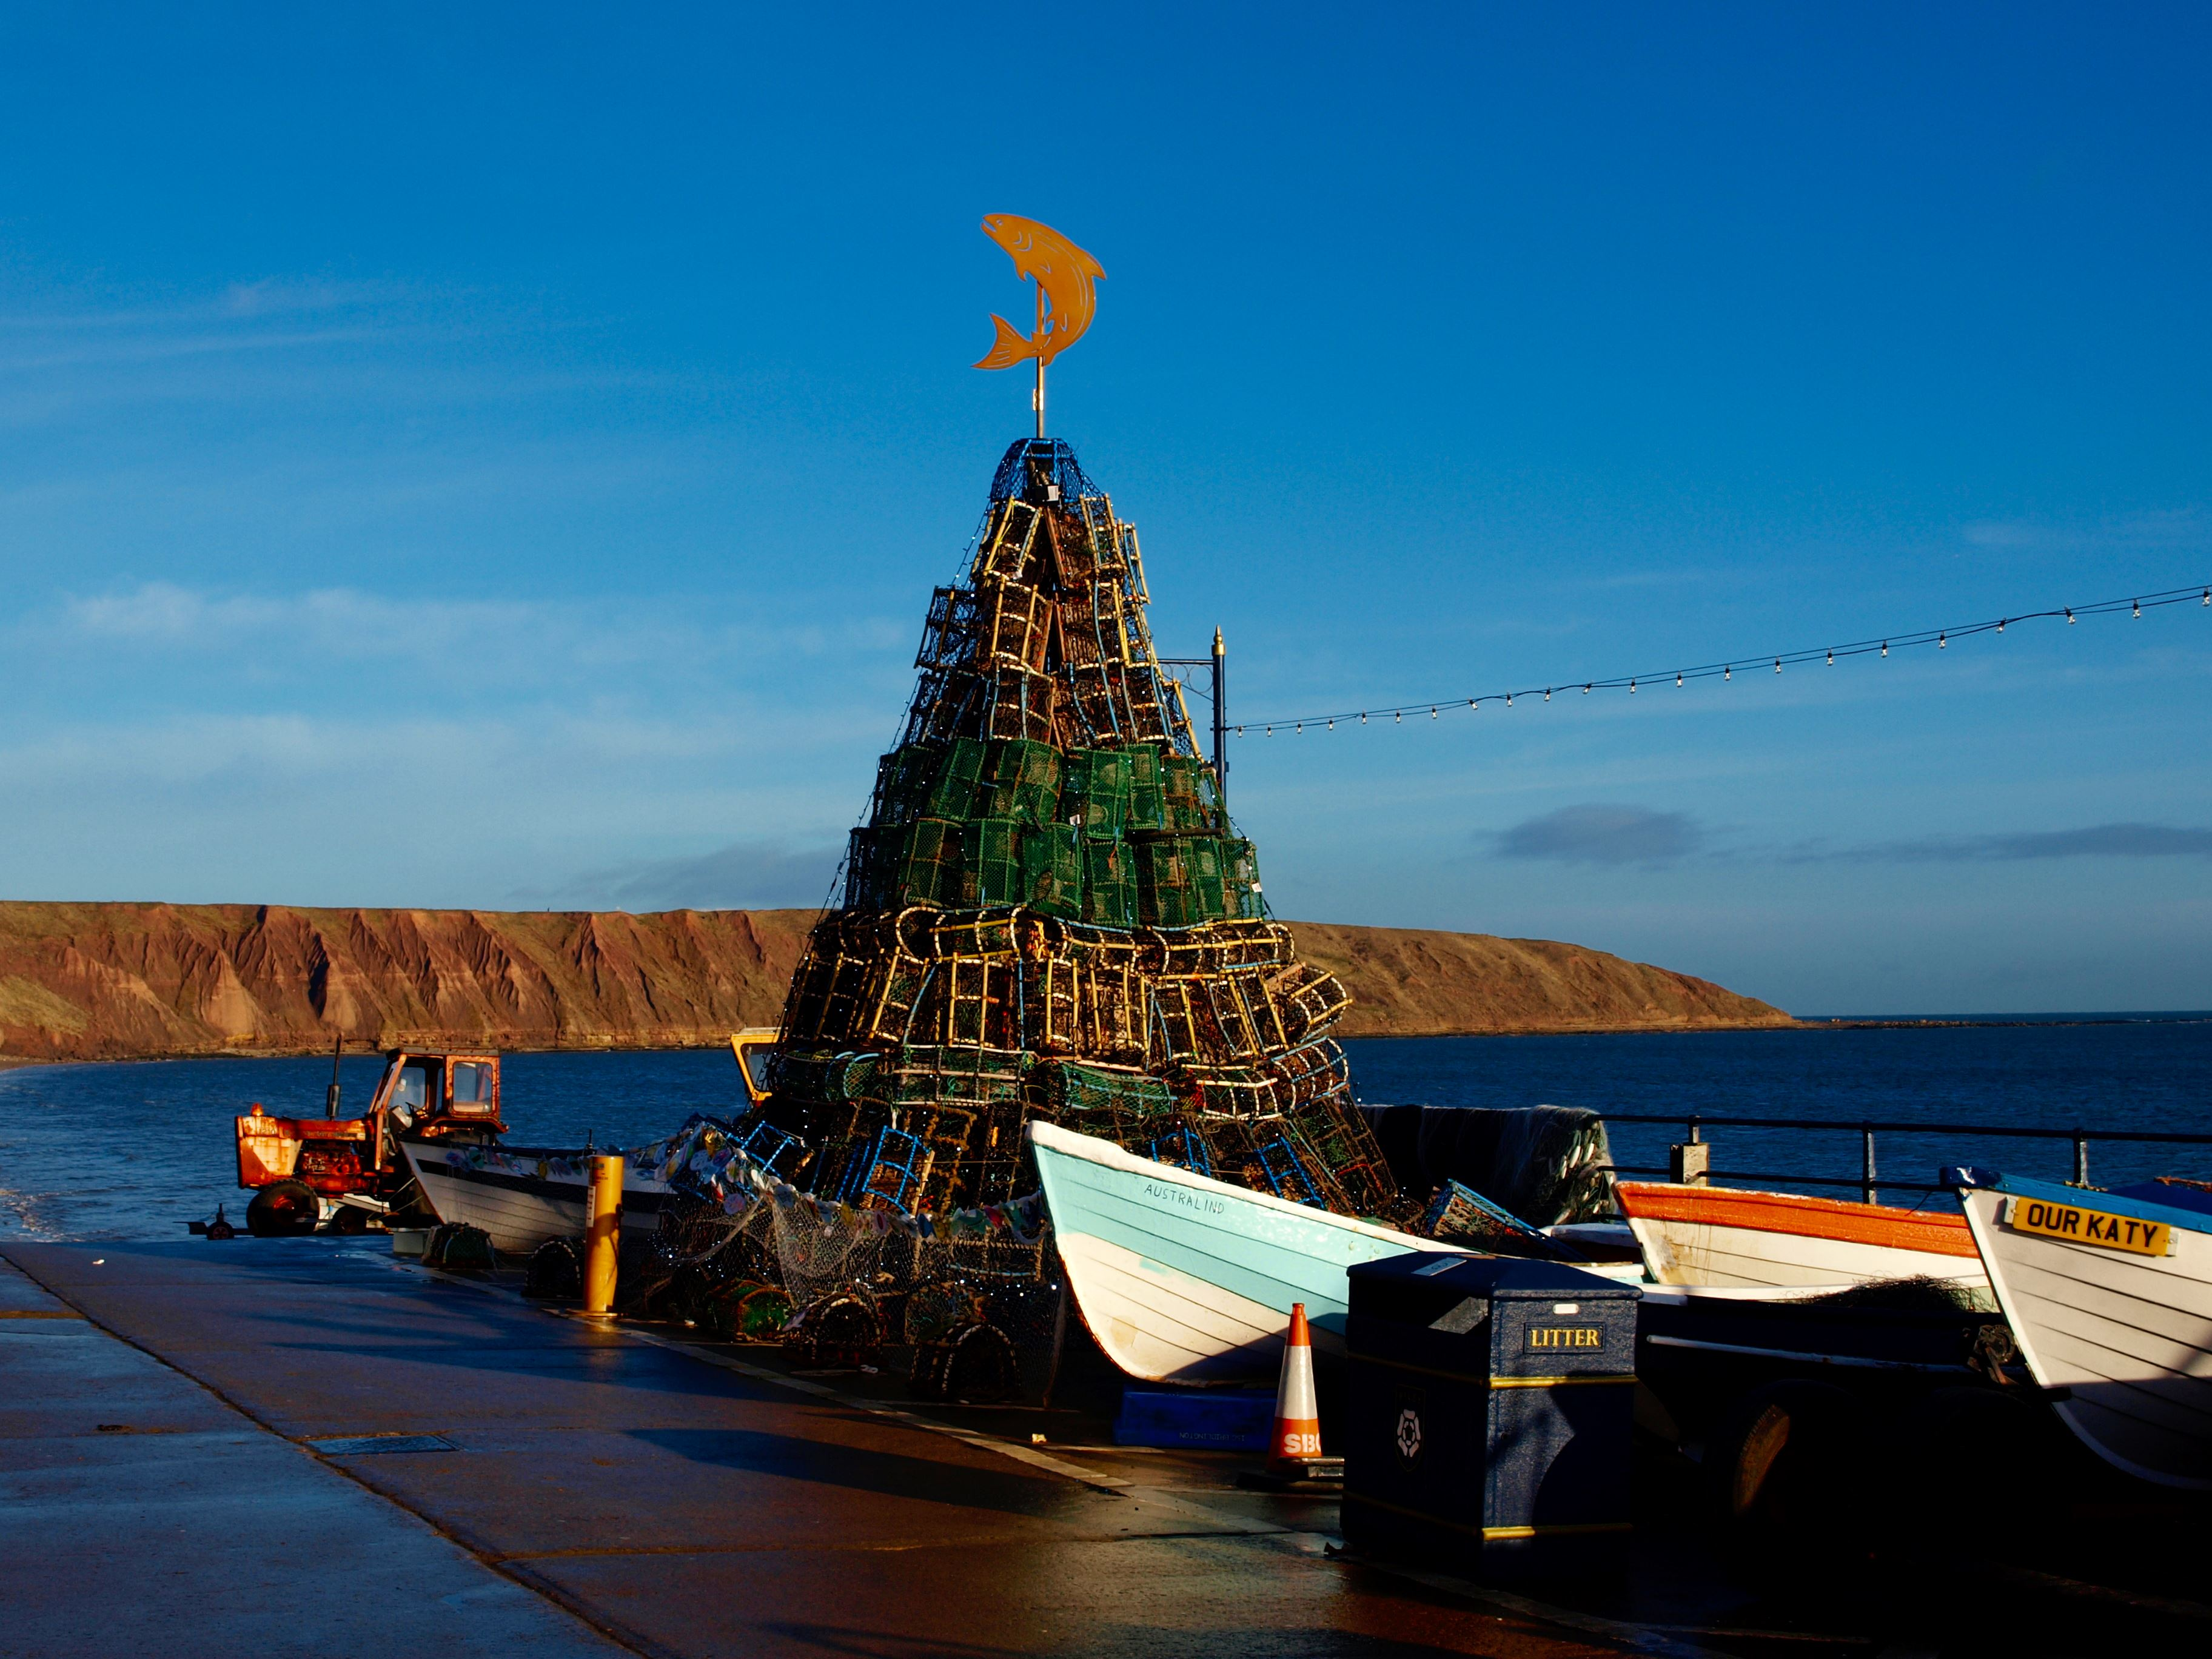 The Filey Fishtive Tree